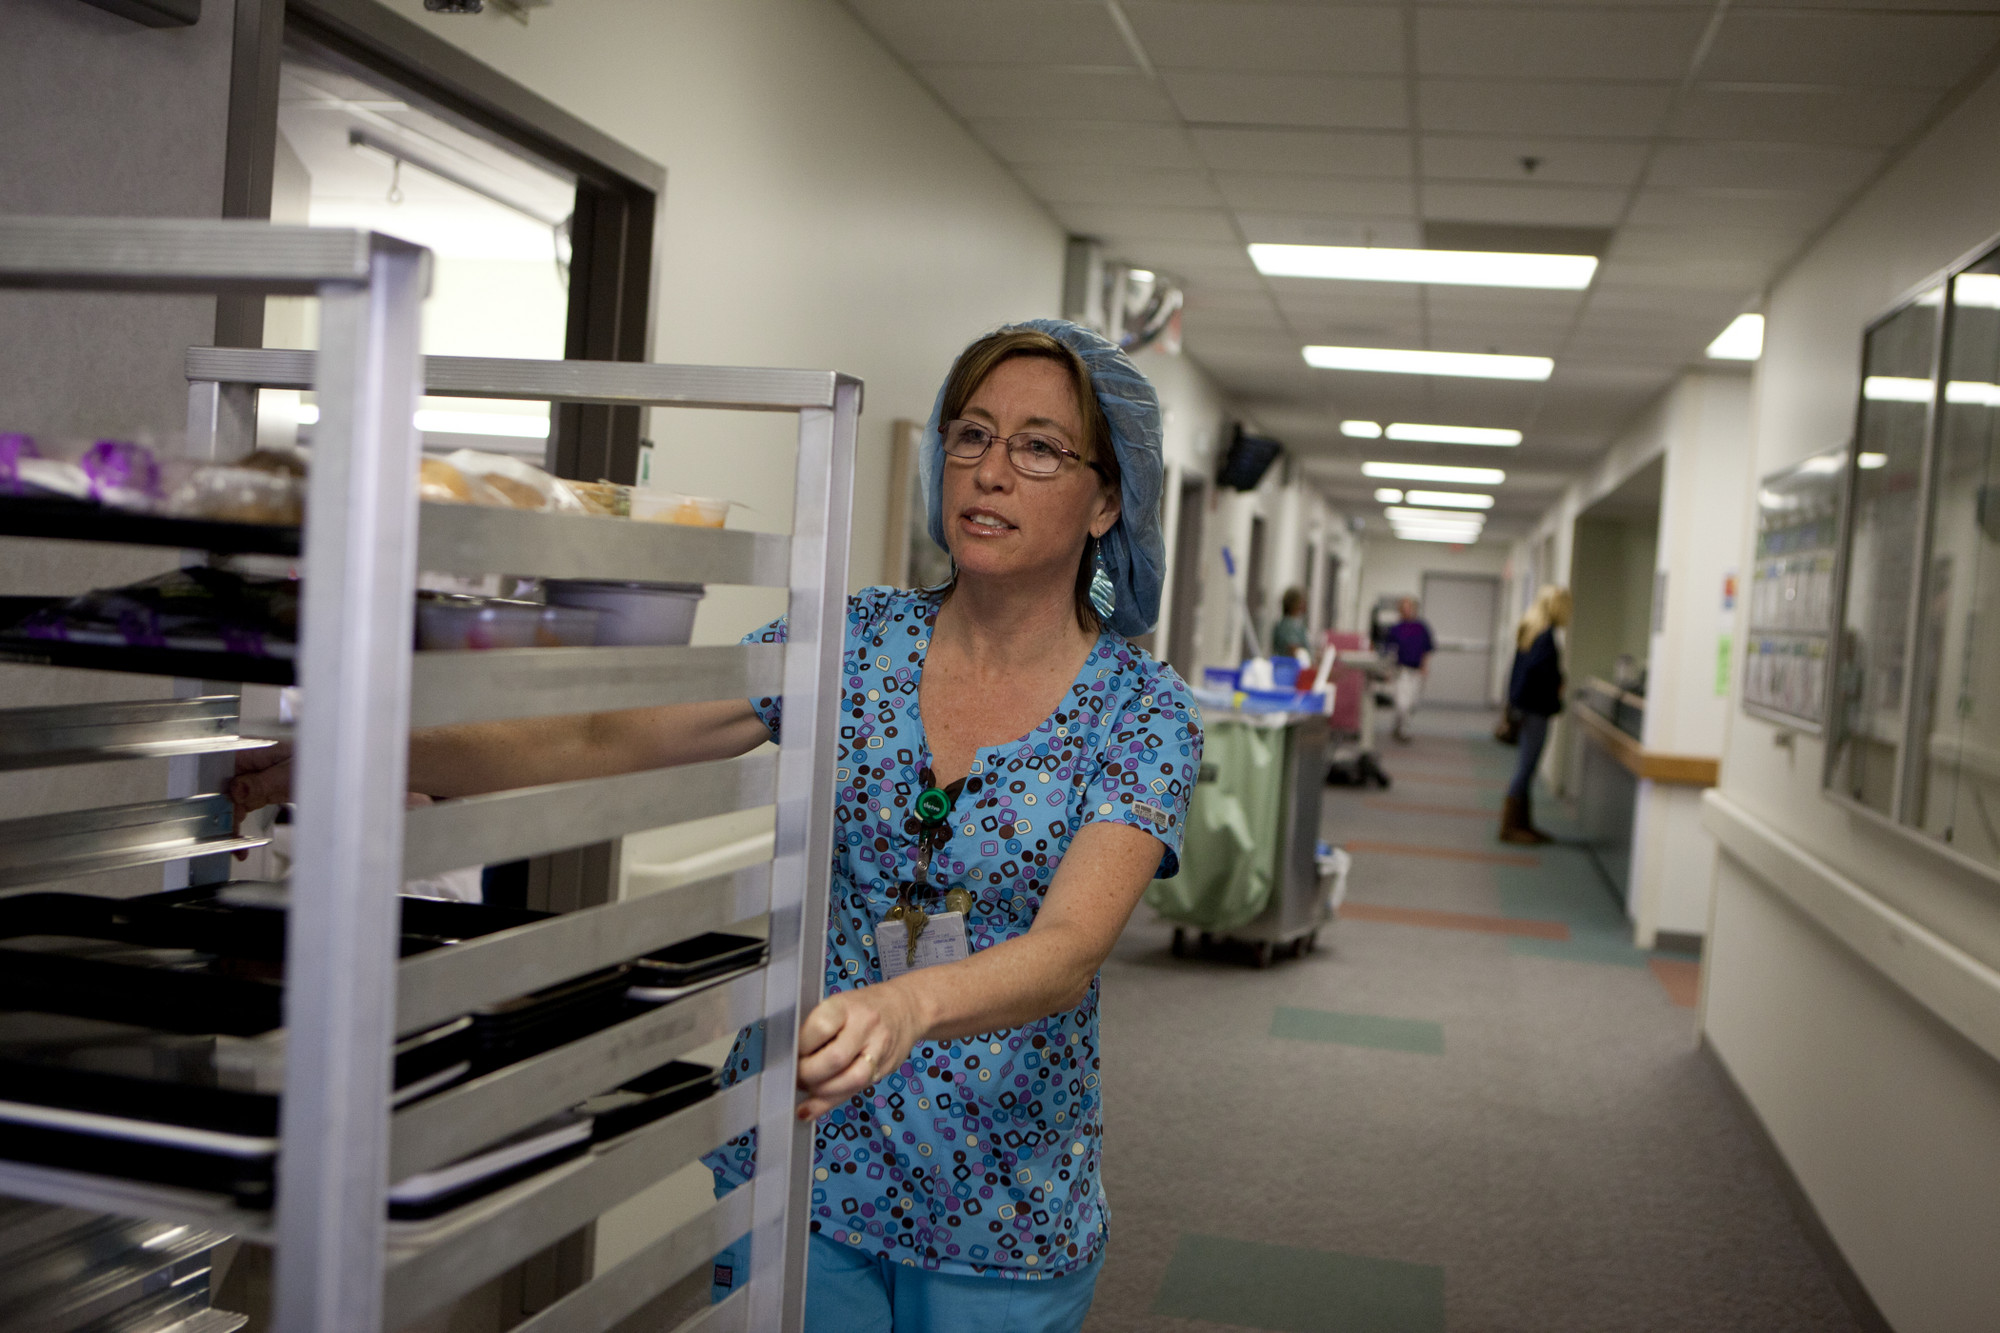 Nutrition aide pushing a cart of meals.